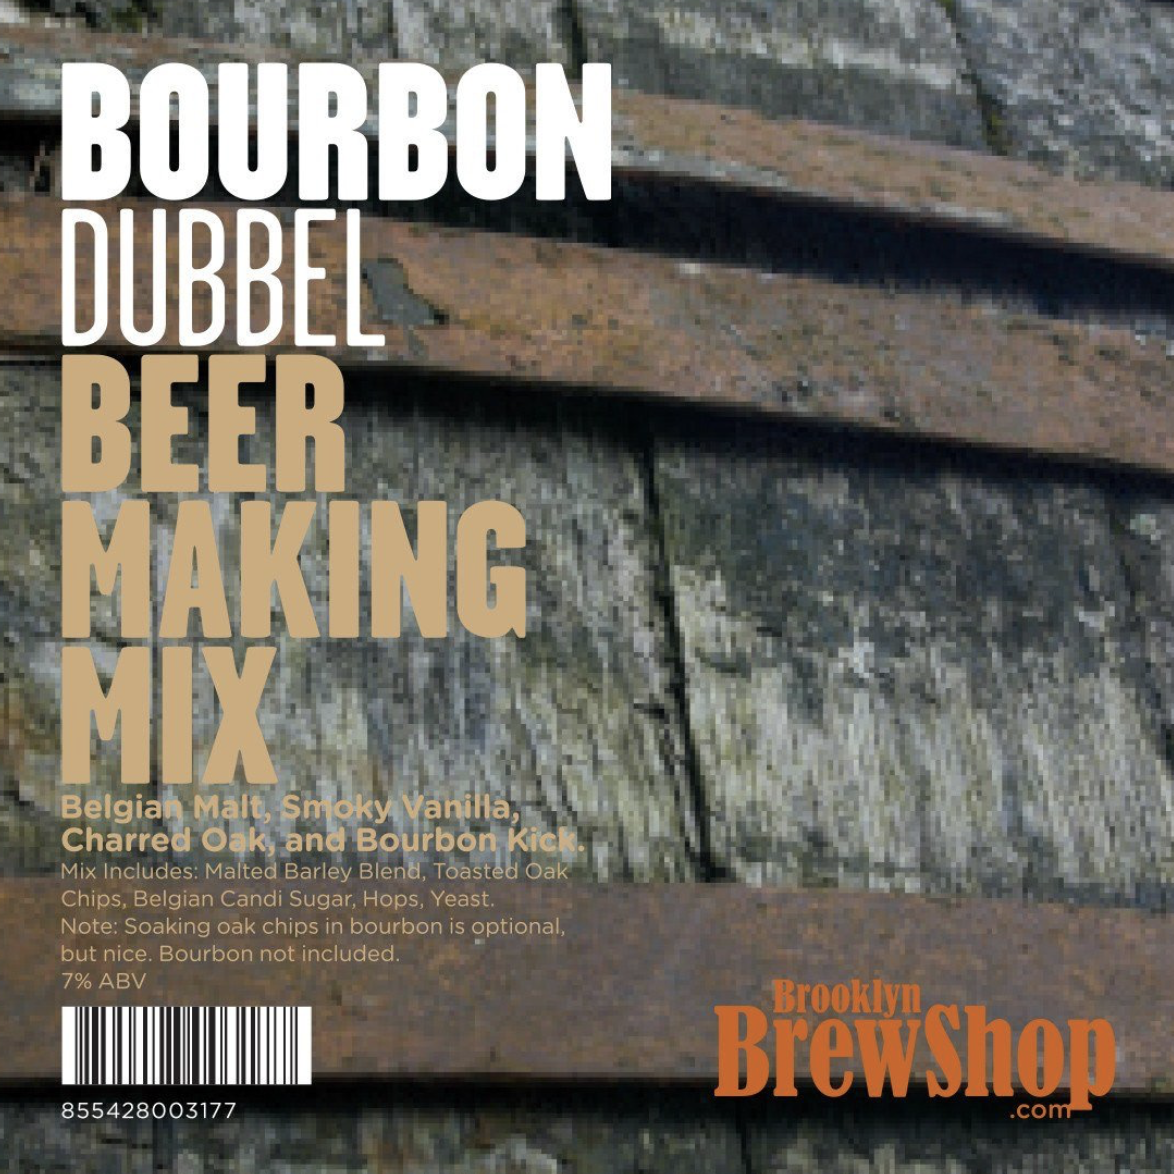 Brooklyn Brew Shop Bourbon Dubbel Mix